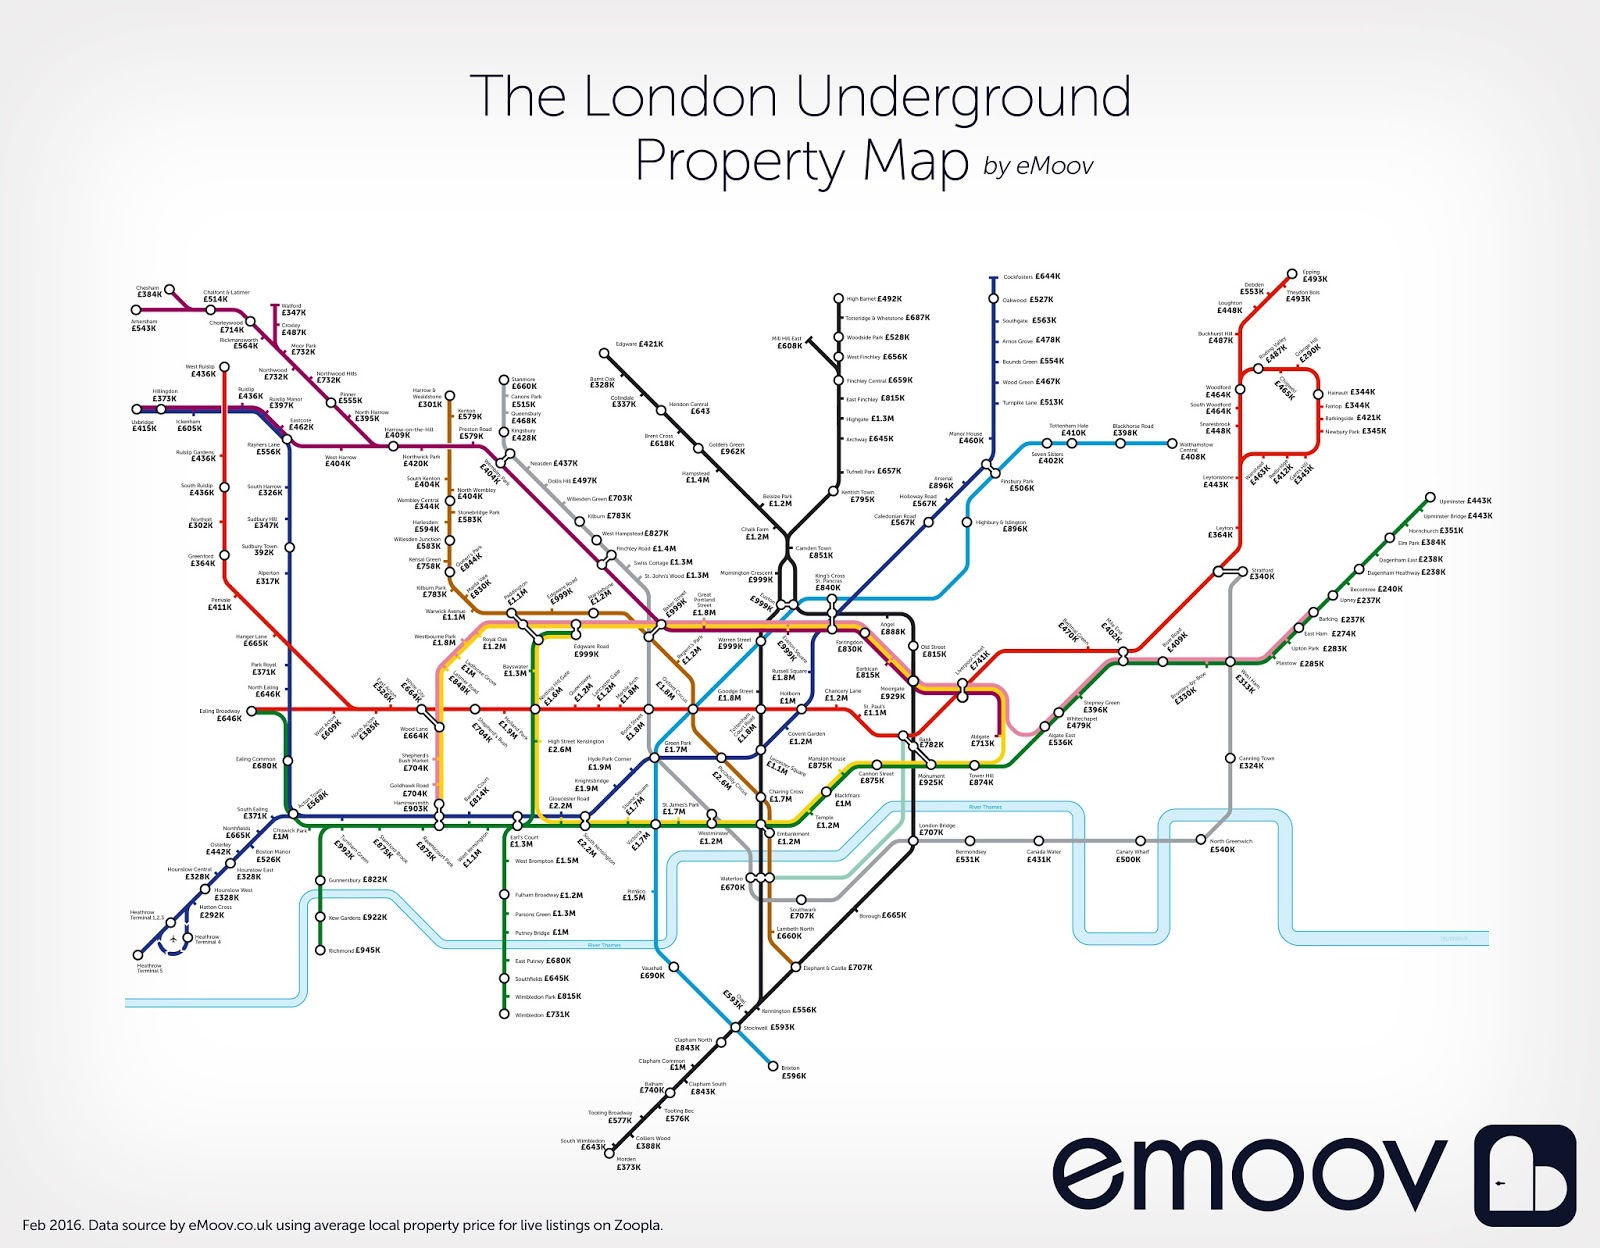 The London underground property map